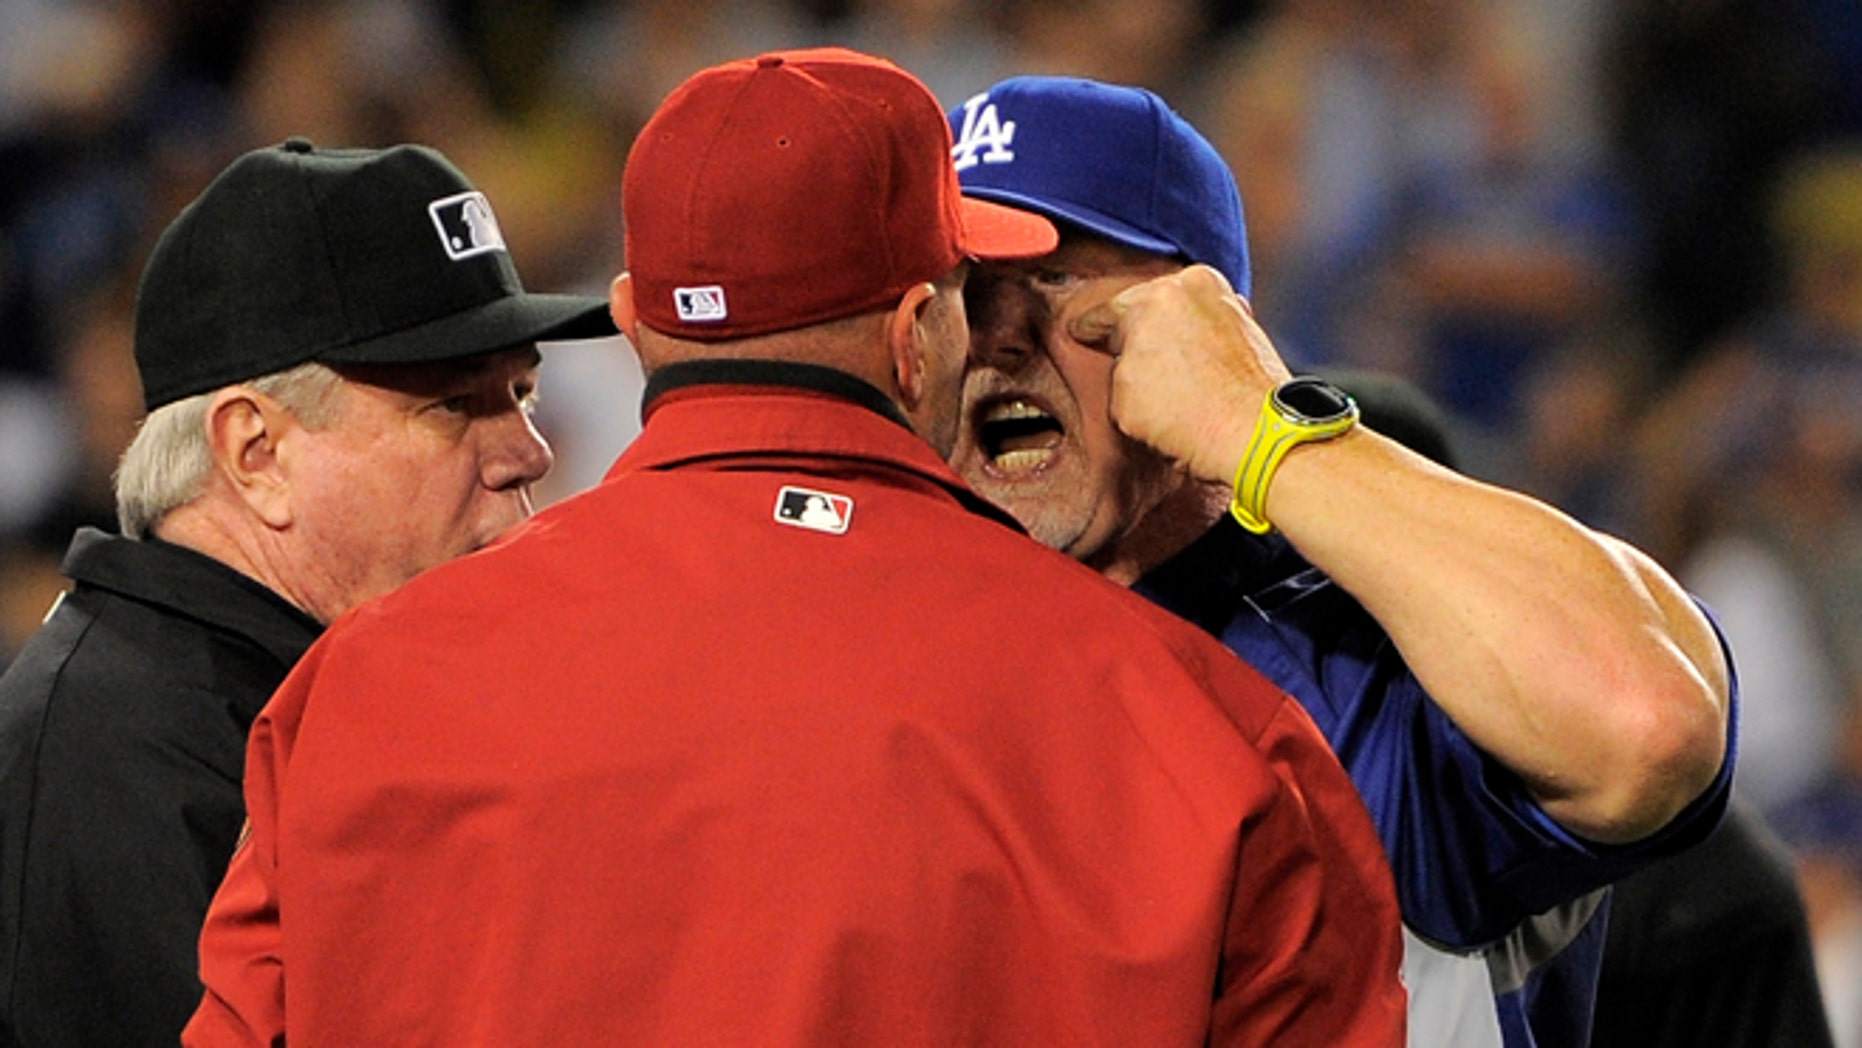 June 11, 2013: Los Angeles Dodgers batting coach Mark McGwire, right, yells at Arizona Diamondbacks manager Kirk Gibson after Los Angeles Dodgers' Zack Greinke was hit by a pitch during the seventh inning of their baseball game in Los Angeles.  (AP/Mark J. Terrill)